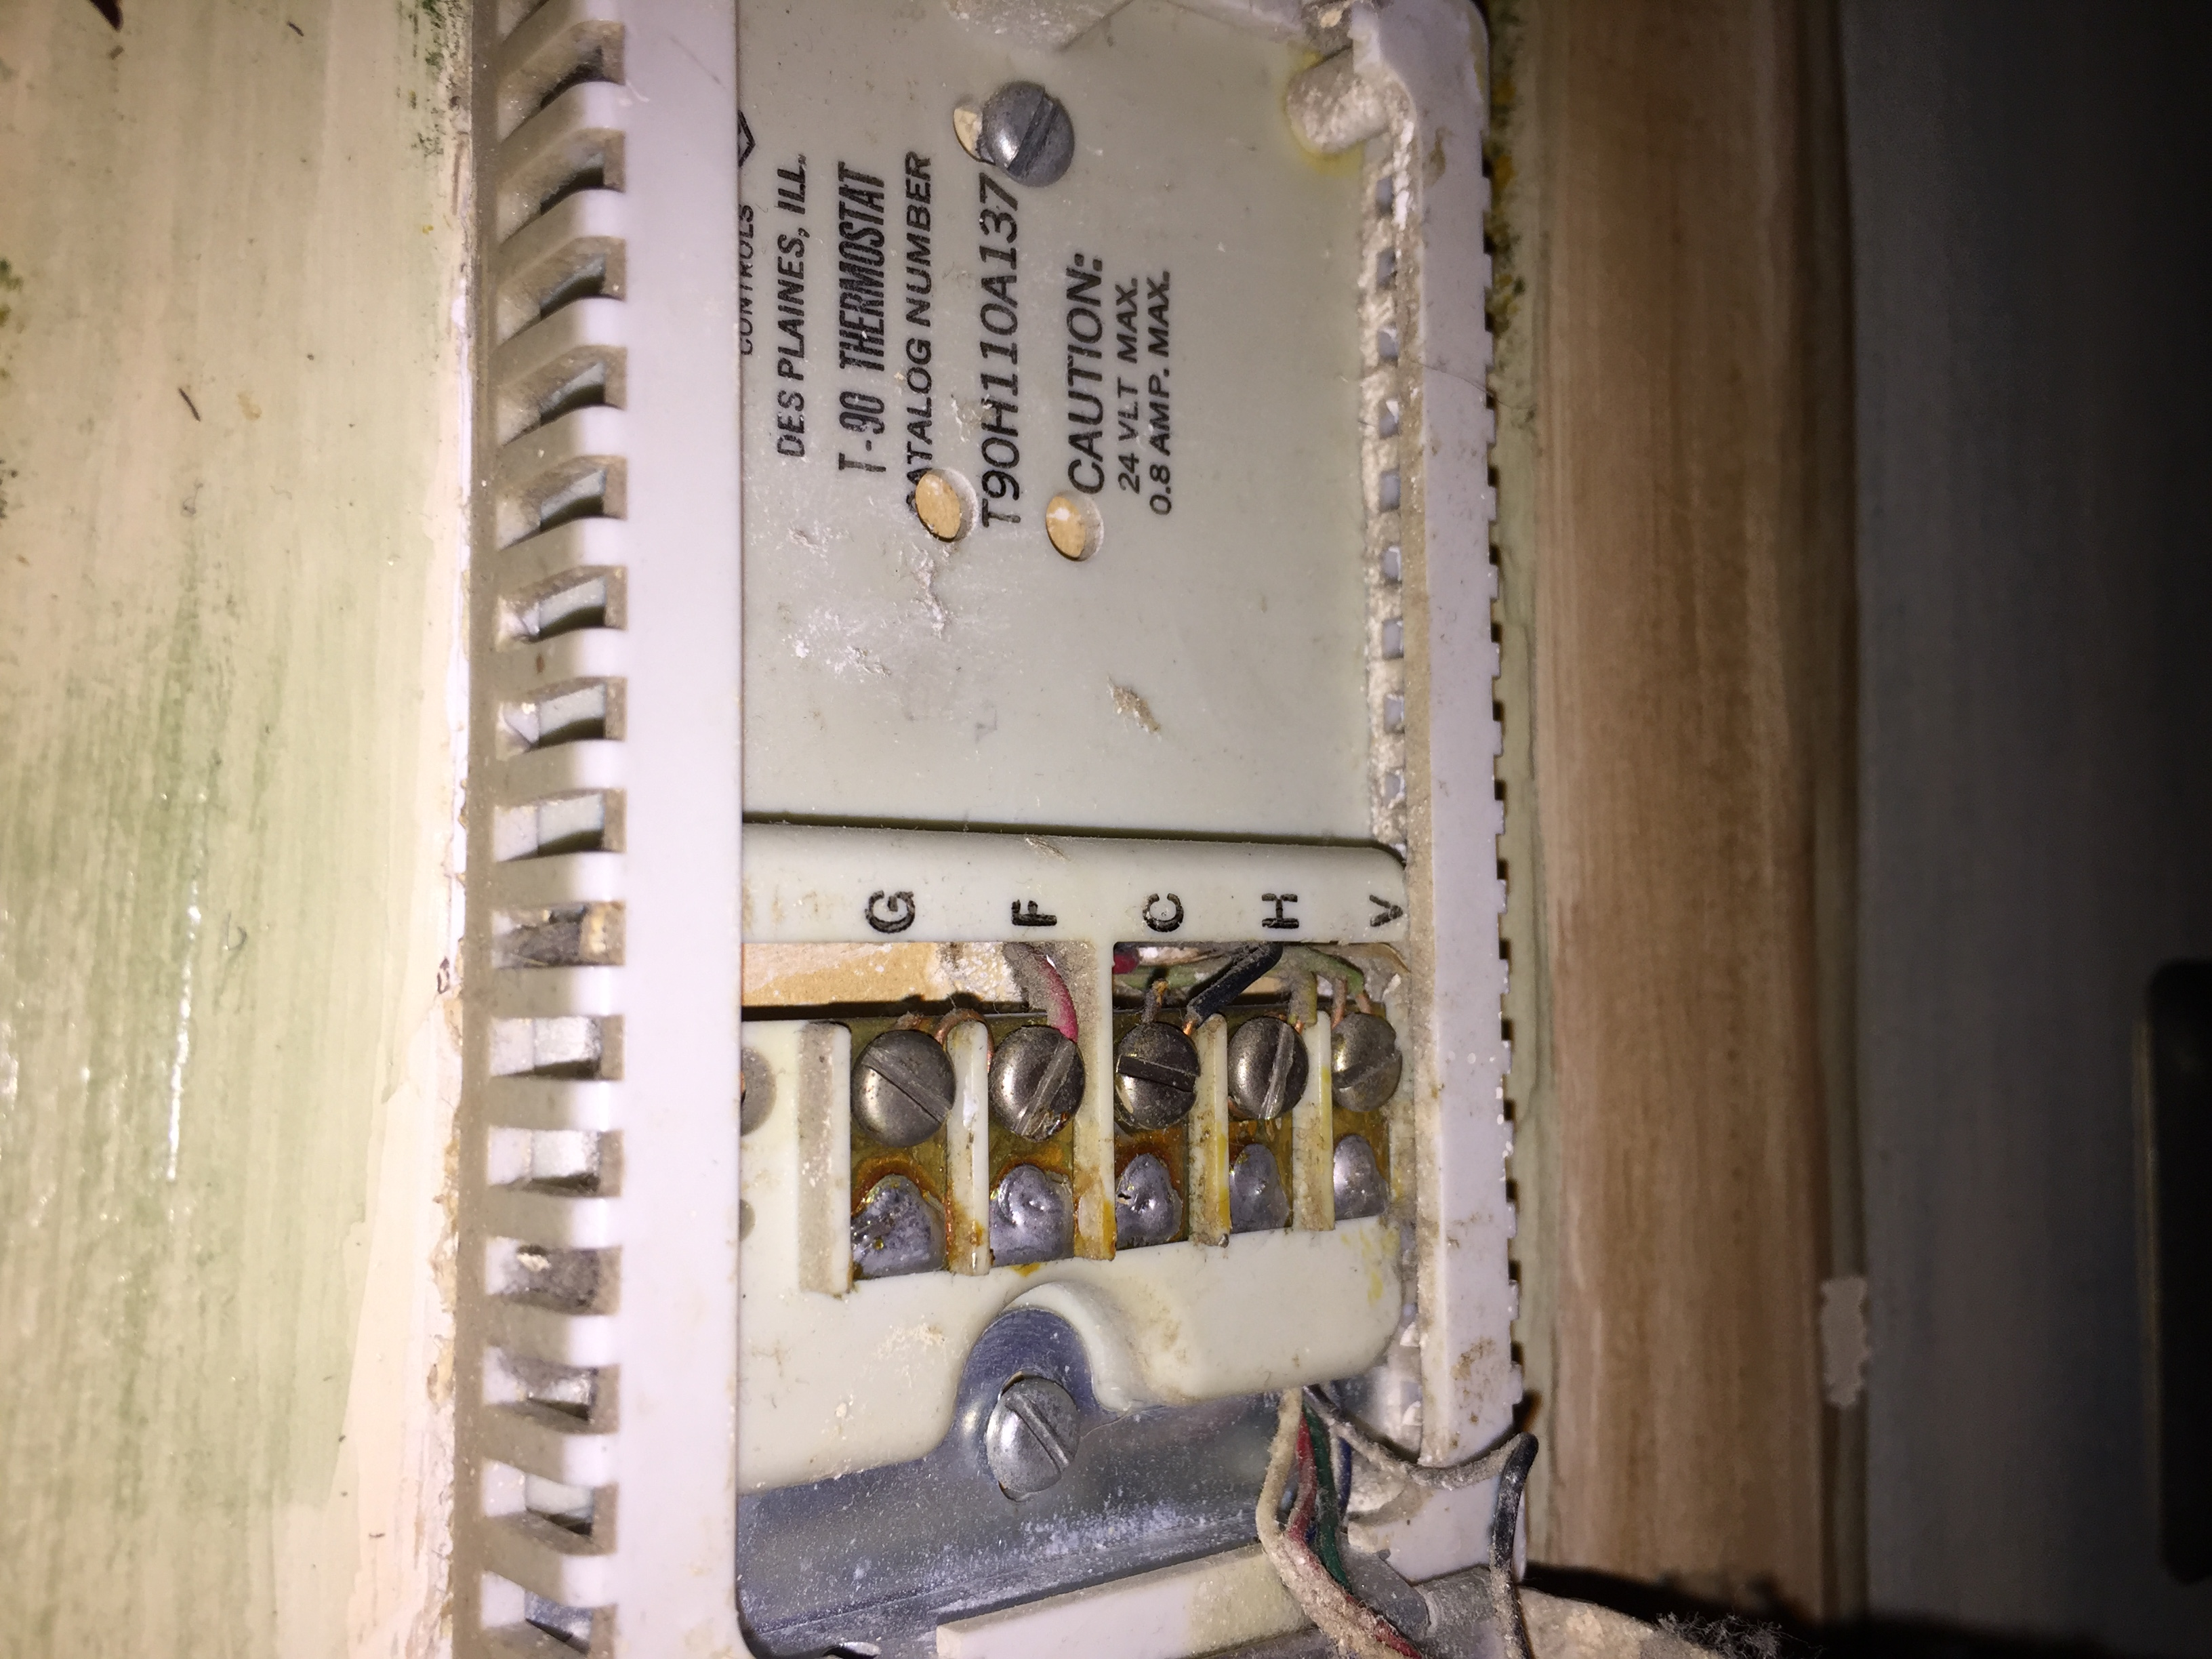 Adc T2000 Install Page 2 Suretydiy Security And Automation Ac Wiring Img 0101jpeg